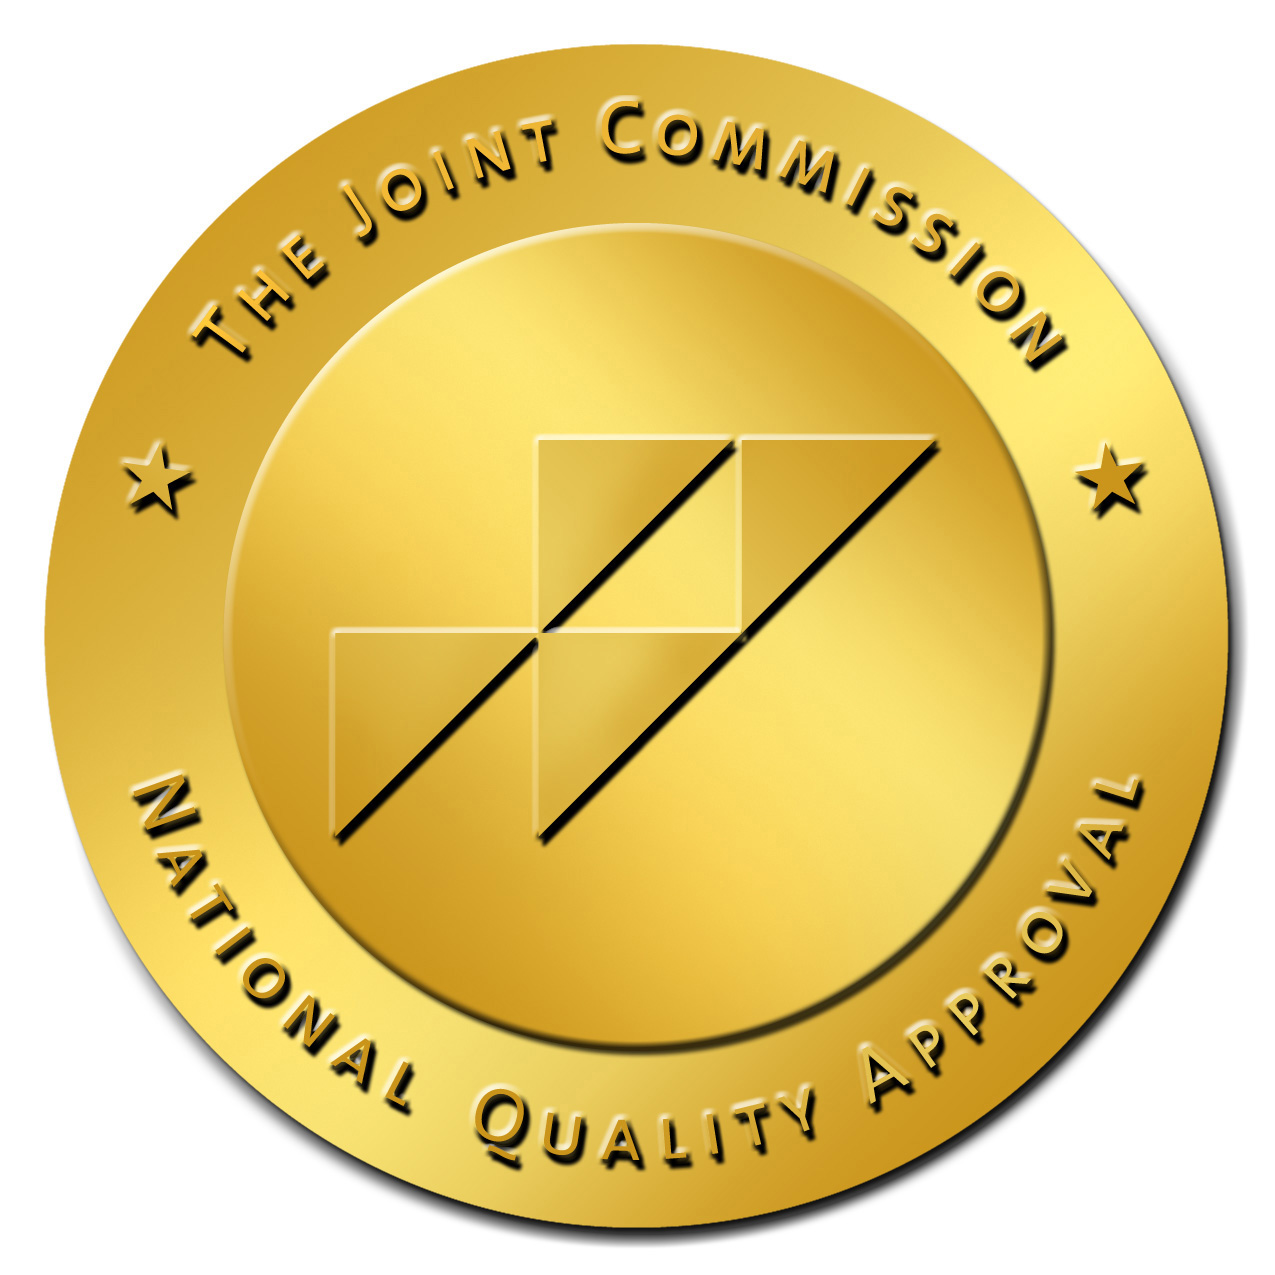 The Benefits of TJC Accreditation